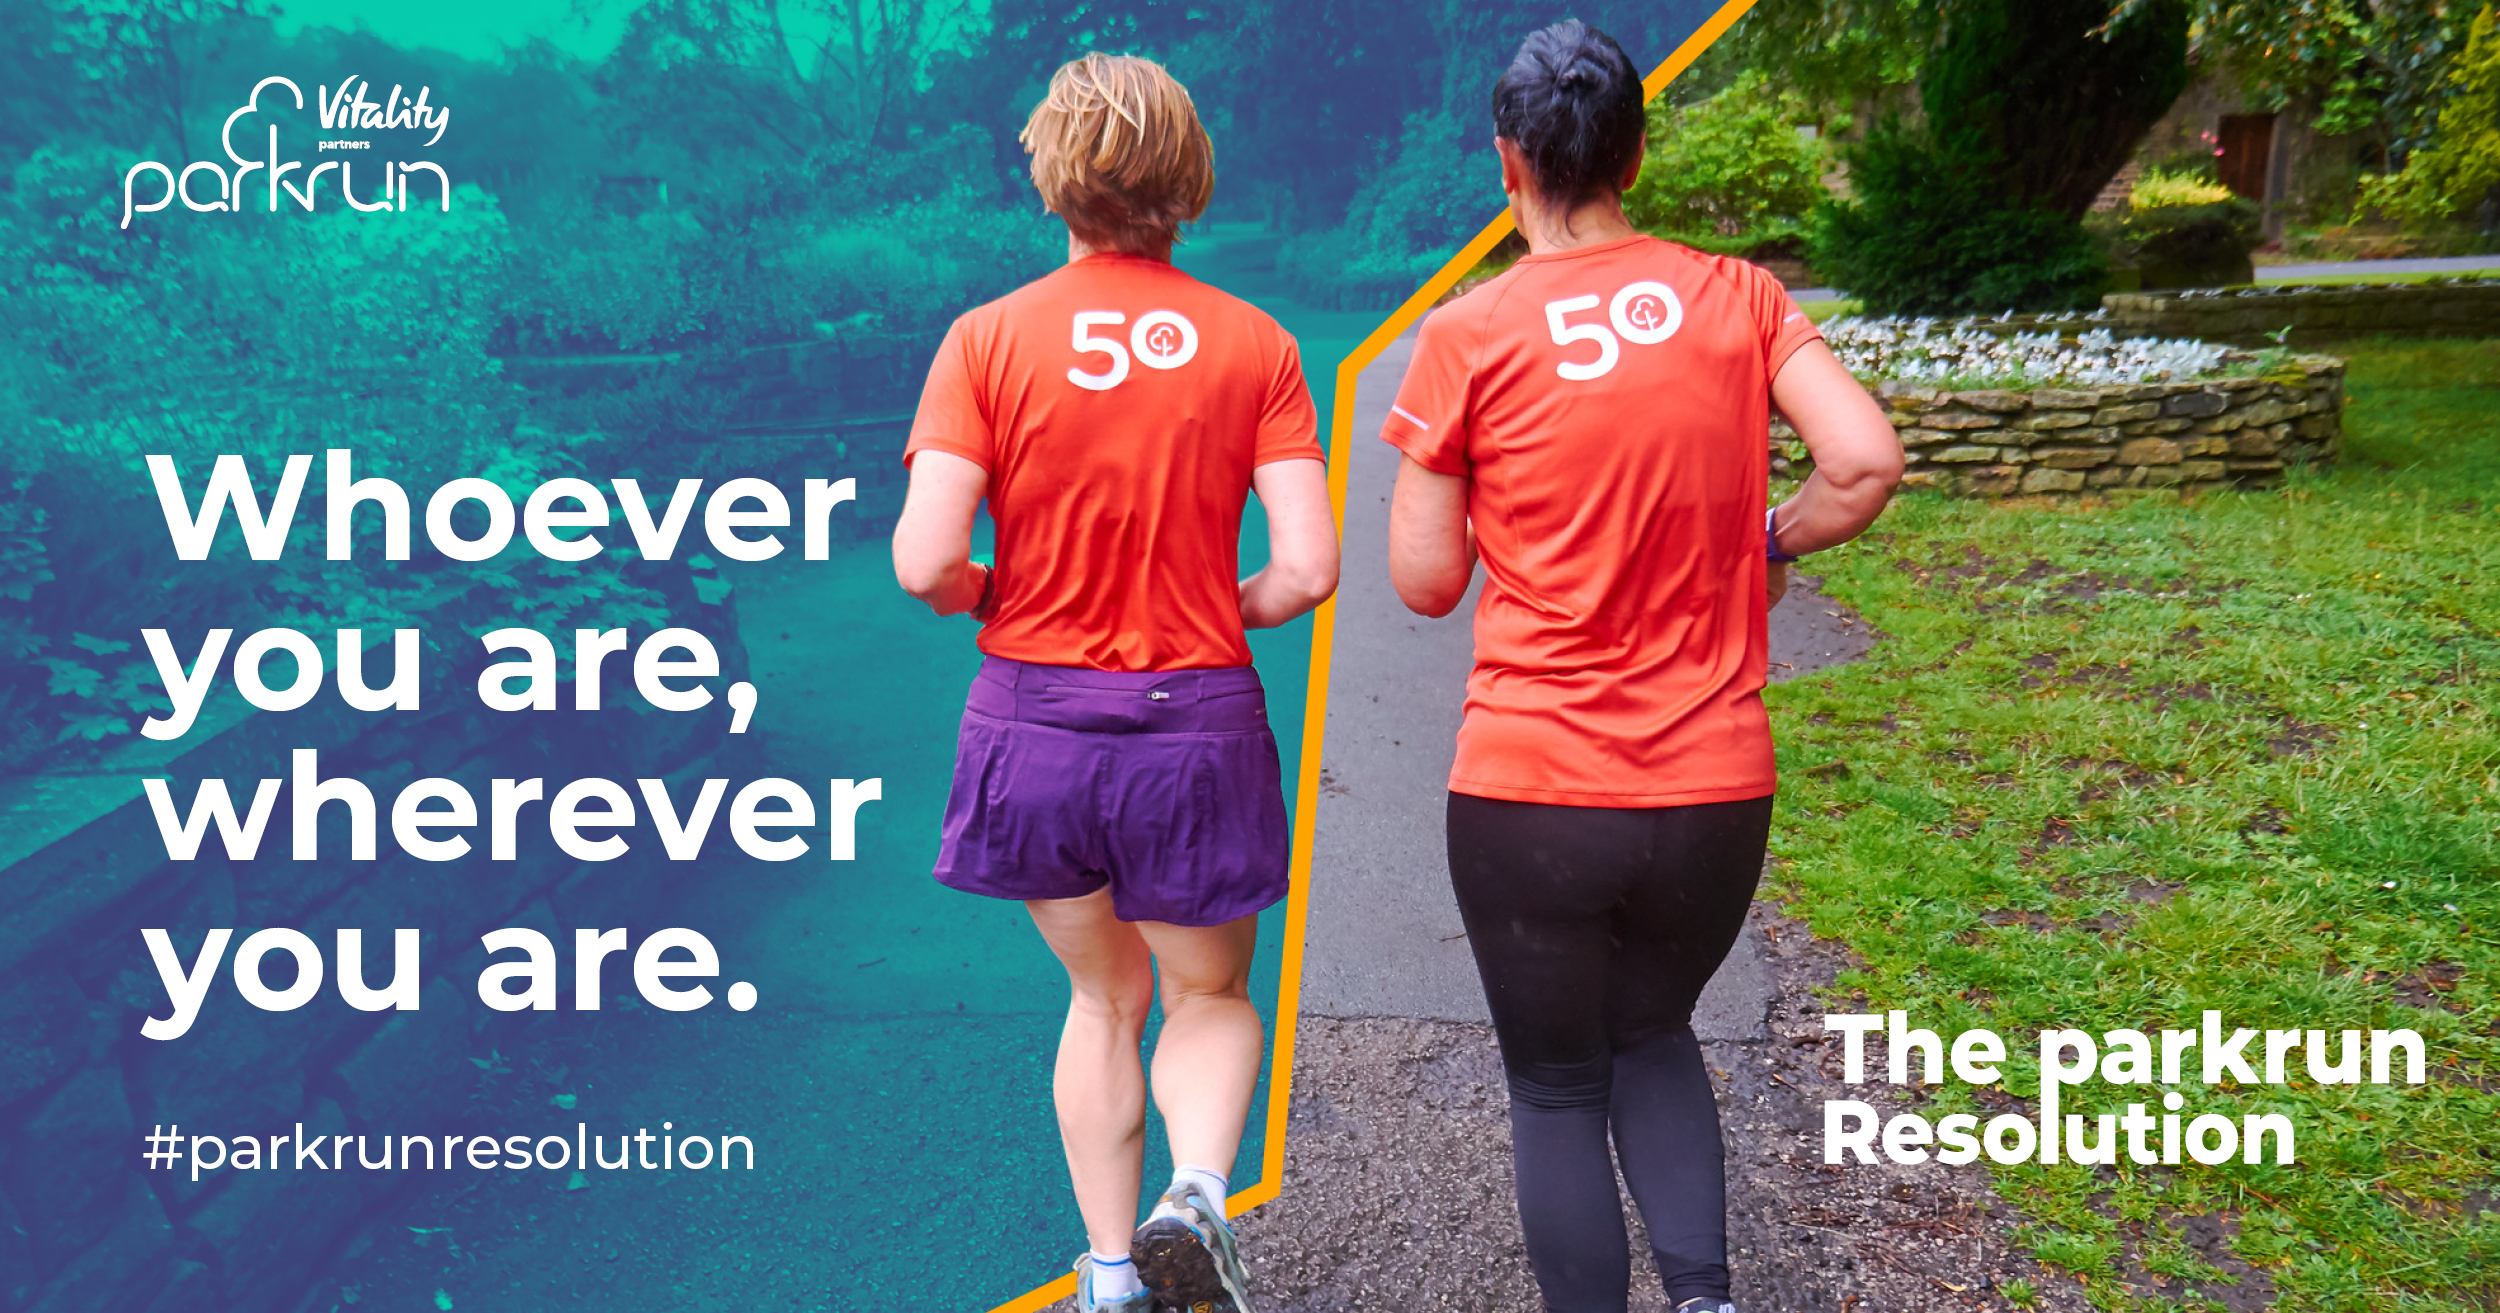 The parkrun resolution_Facebook_1200x630px5